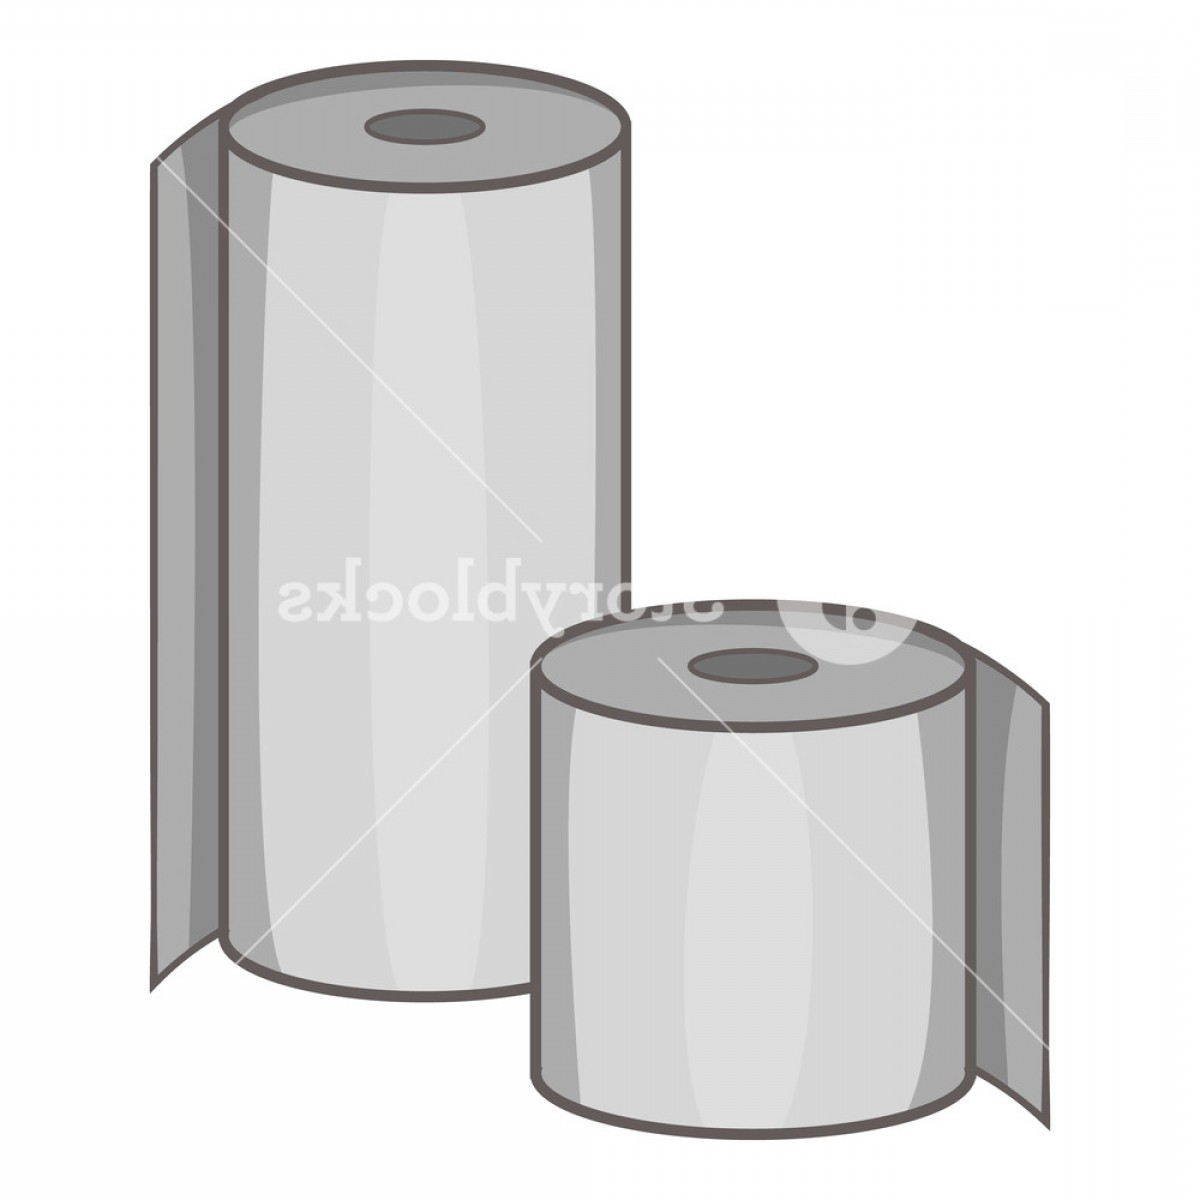 Toilet Paper Vector: Toilet Paper Icon Cartoon Illustration Of Toilet Paper Vector Icon For Web Rsxndhpxjlgjydxd